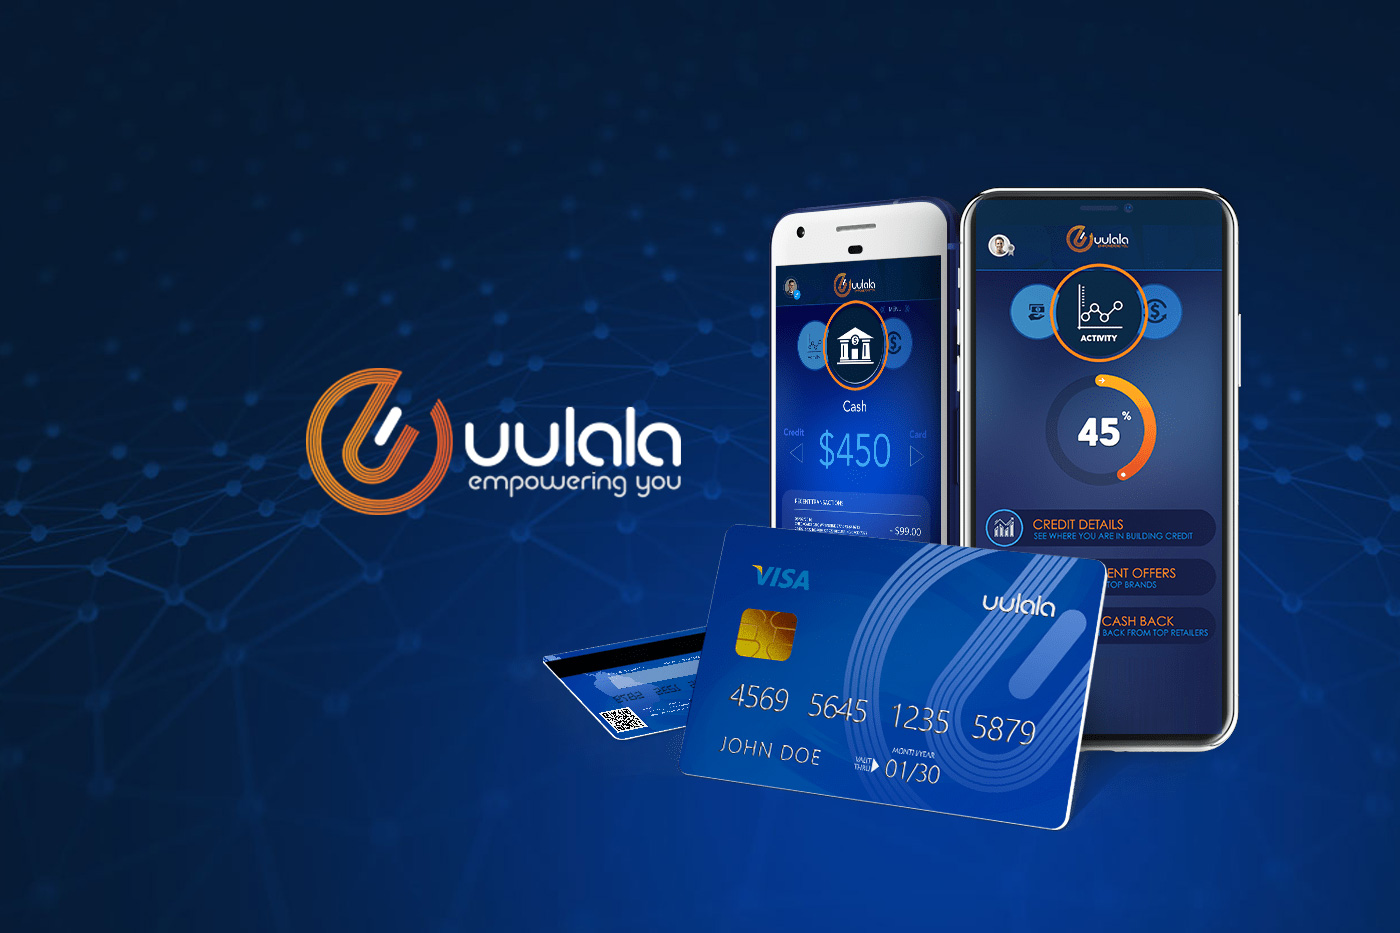 uulala-the-financial-app-accelerating-financial-inclusion-for-the-un-banked[1]